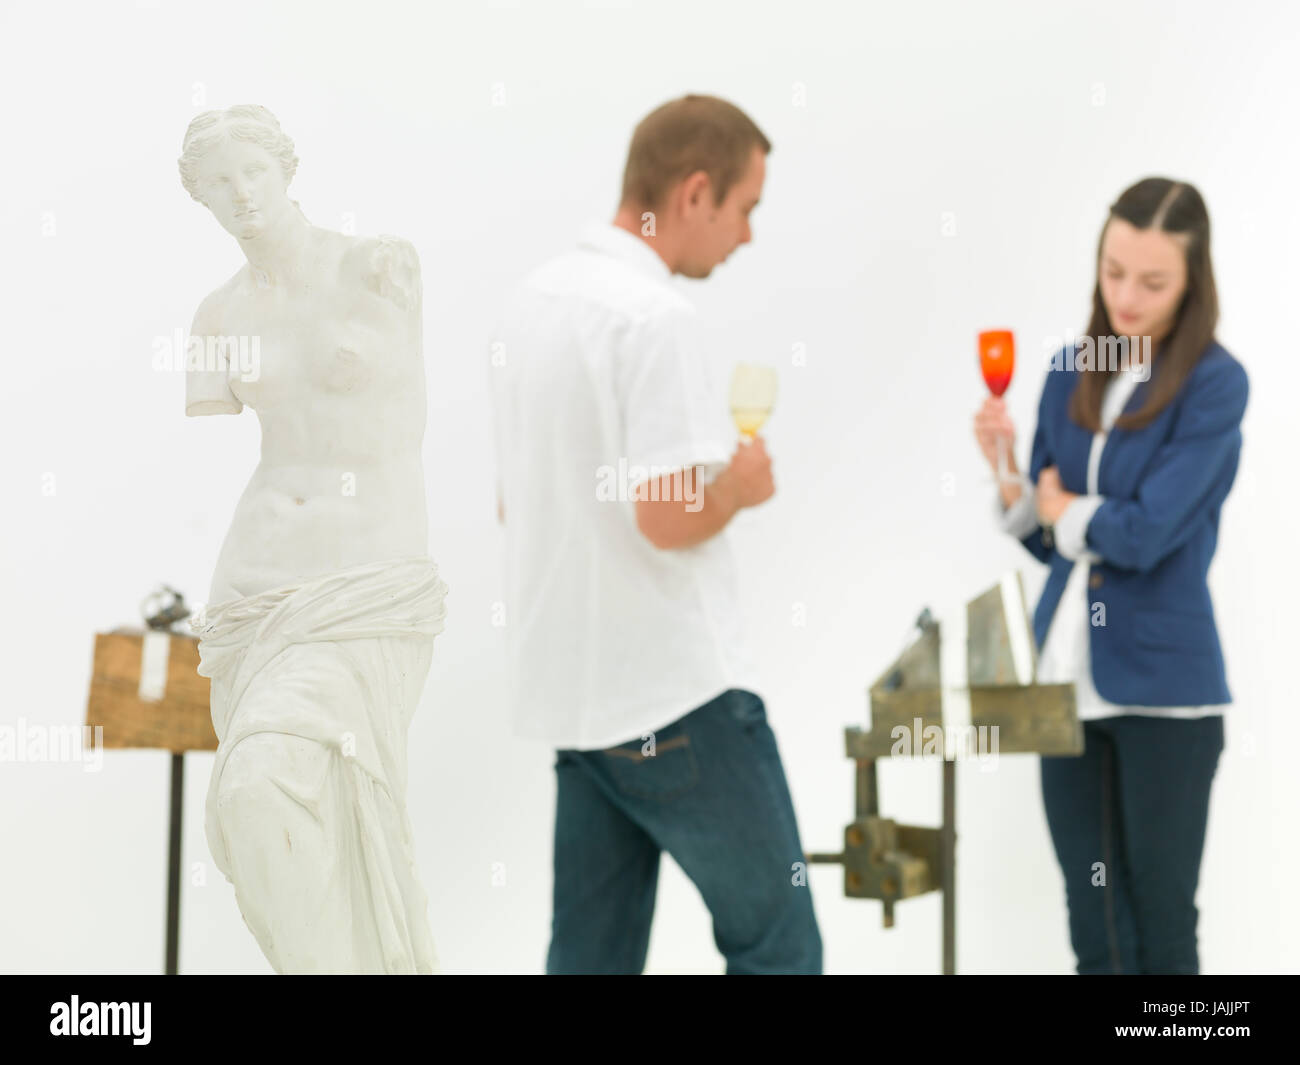 woman and man scrutinizing contemporary sculpture behind a replica of Venus de Milo statue in a museum - Stock Image